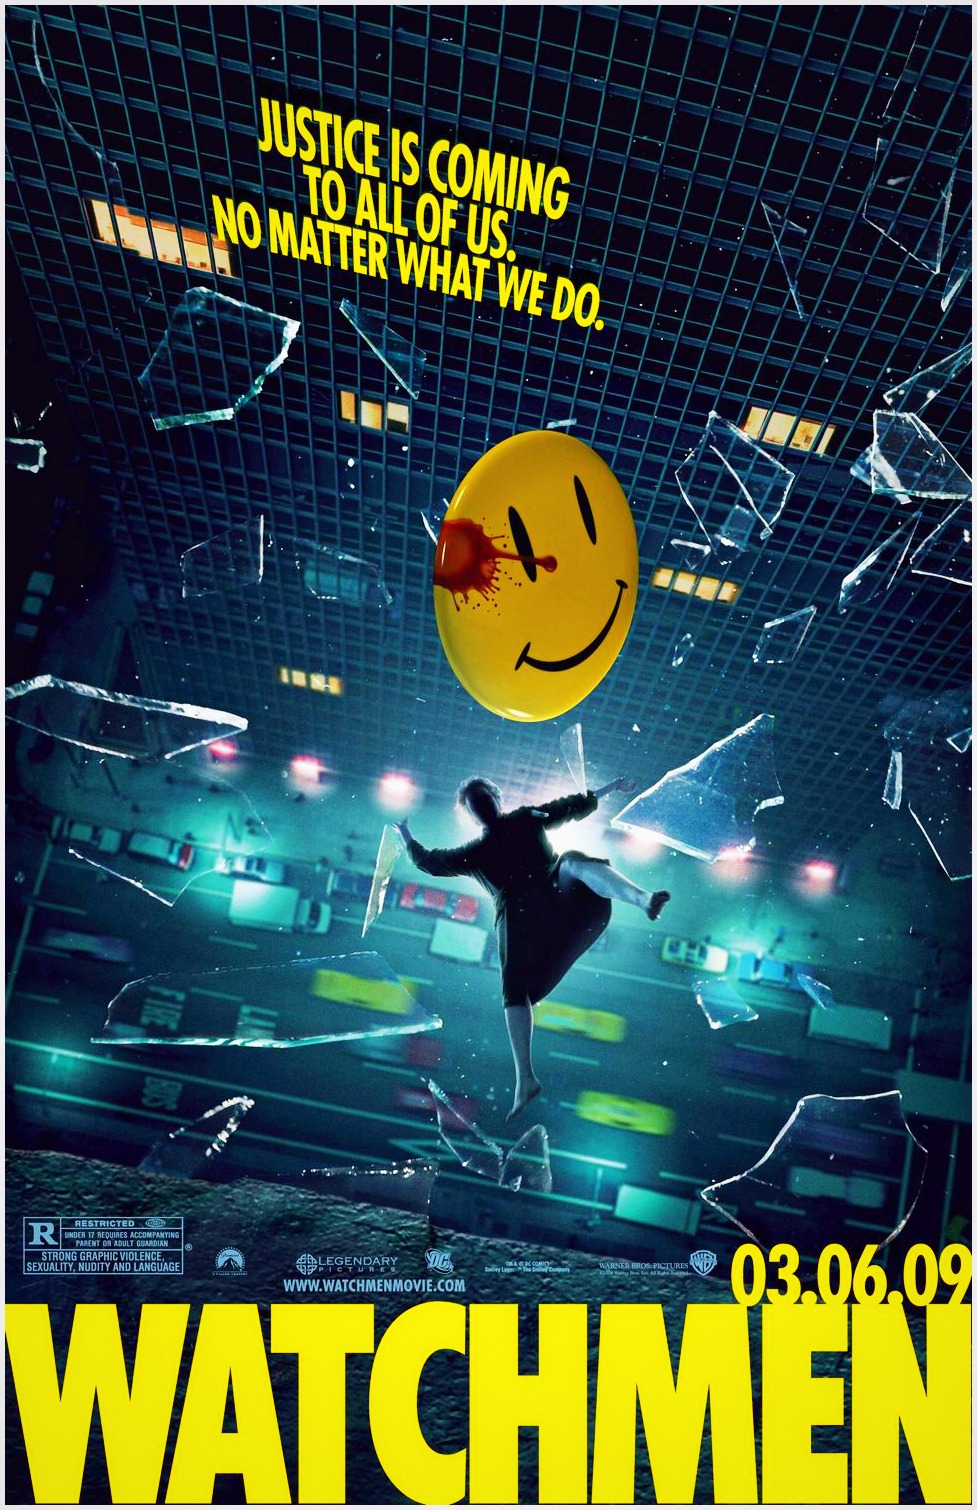 Watchmen - Watchmen Photo (23598588) - Fanpop